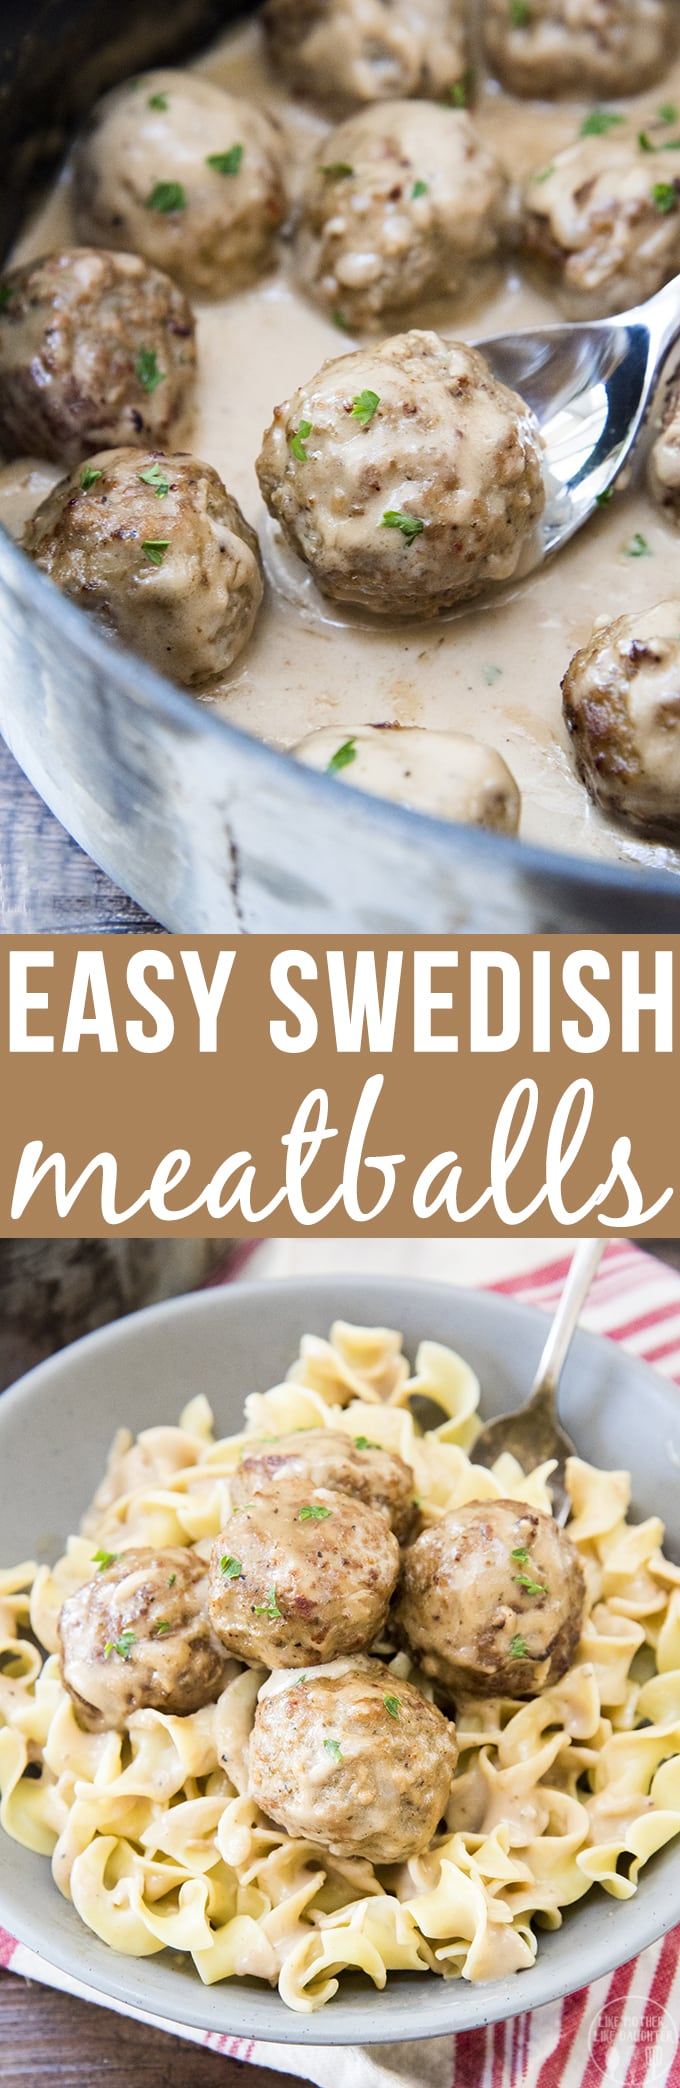 These easy Swedish meatballs are covered in a rich and creamy sauce and ready in only about 15 minutes!